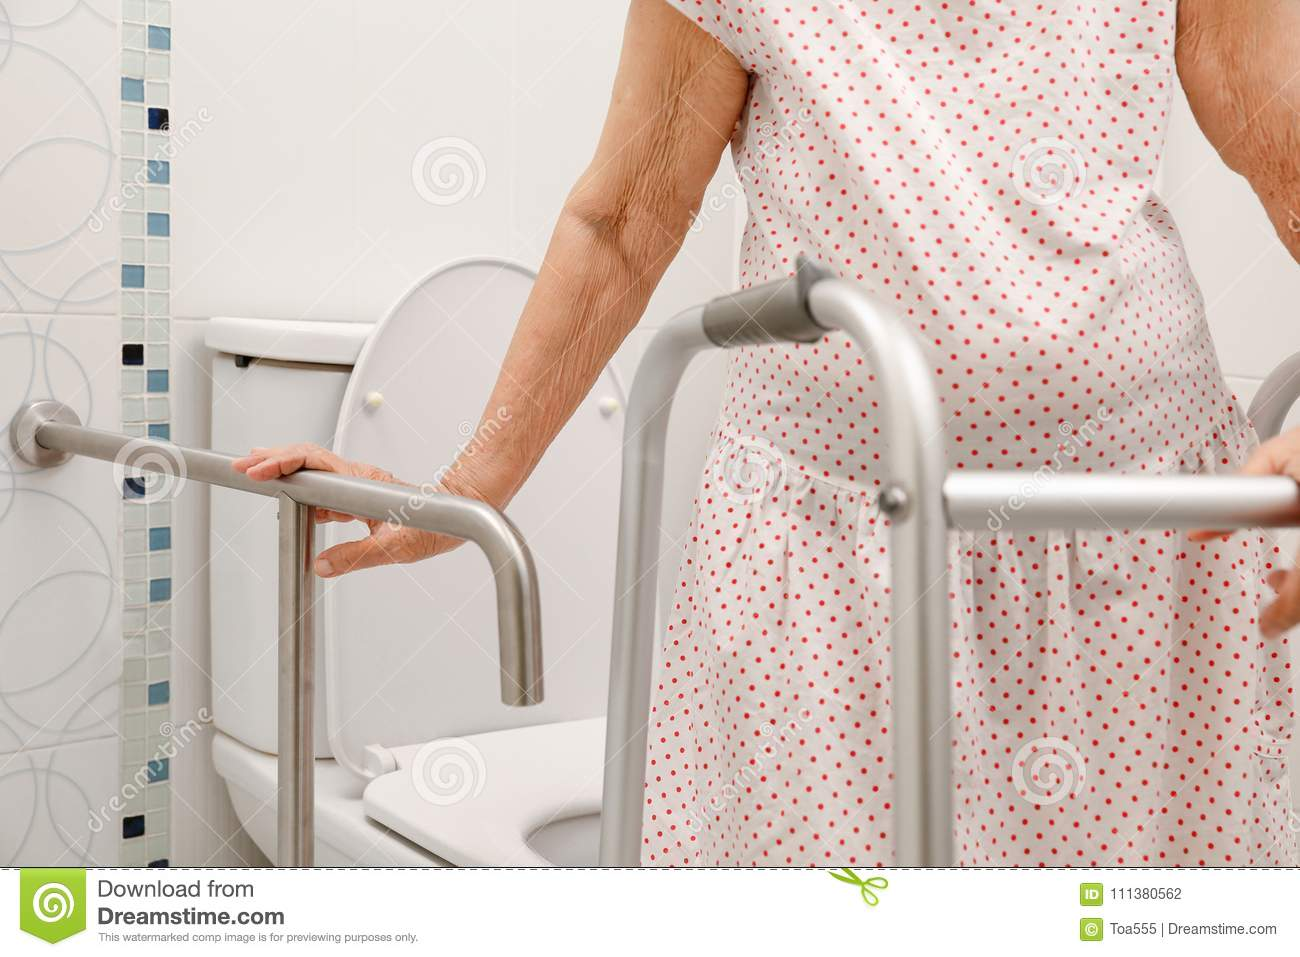 Elderly Woman Holding On Handrail In Toilet. Stock Photo - Image of ...